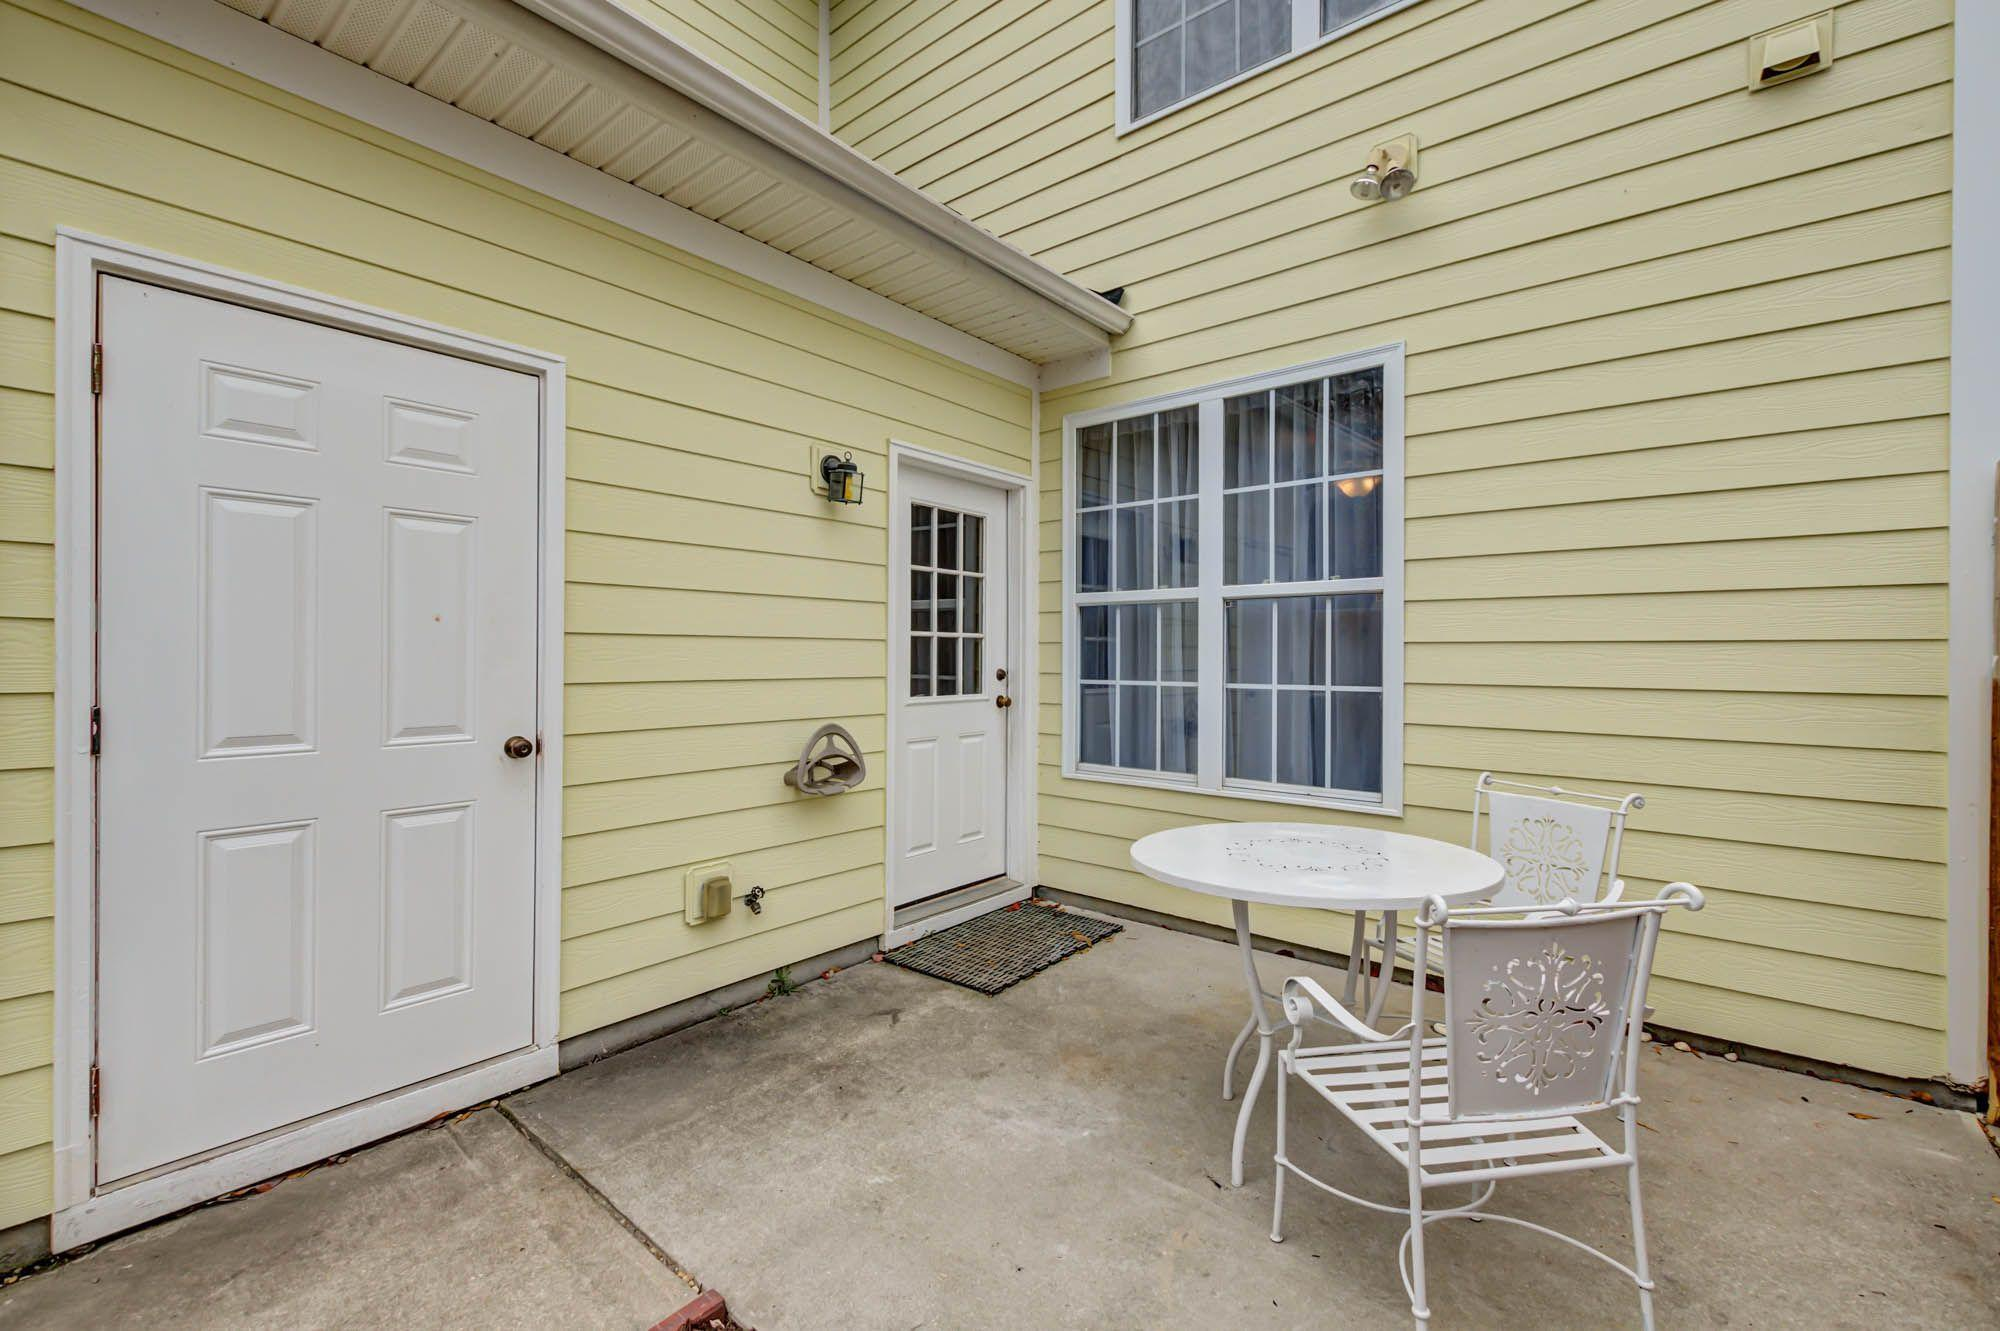 Whitney Lake Condos For Sale - 2926 Sugarberry, Johns Island, SC - 18